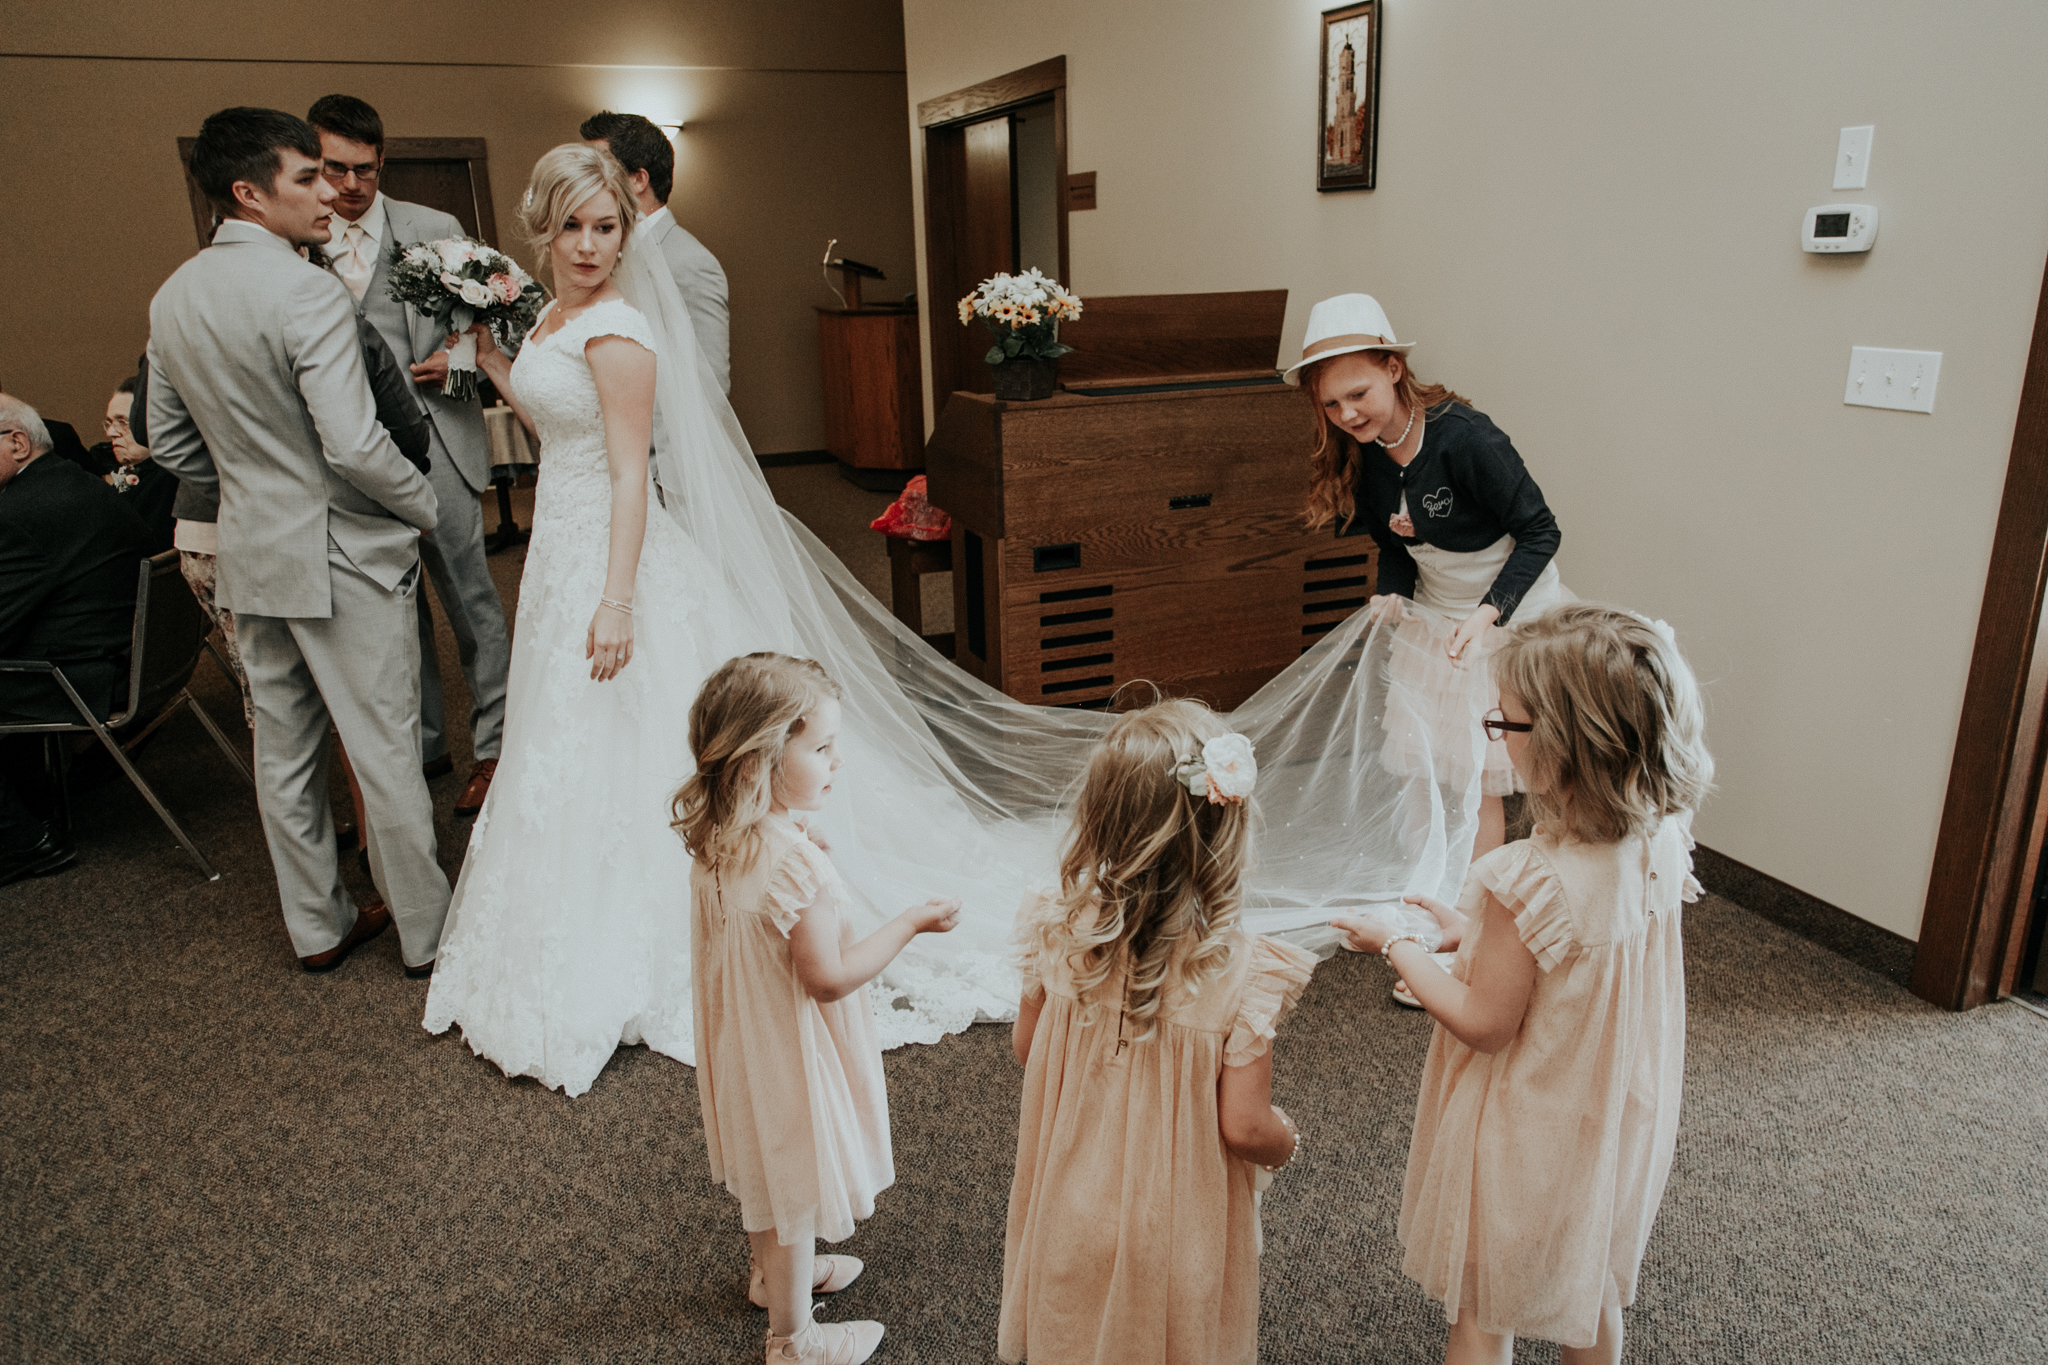 lethbridge-wedding-photographer-love-and-be-loved-photography-steven-marlene-reformed-church-photo-picture-image-25.jpg